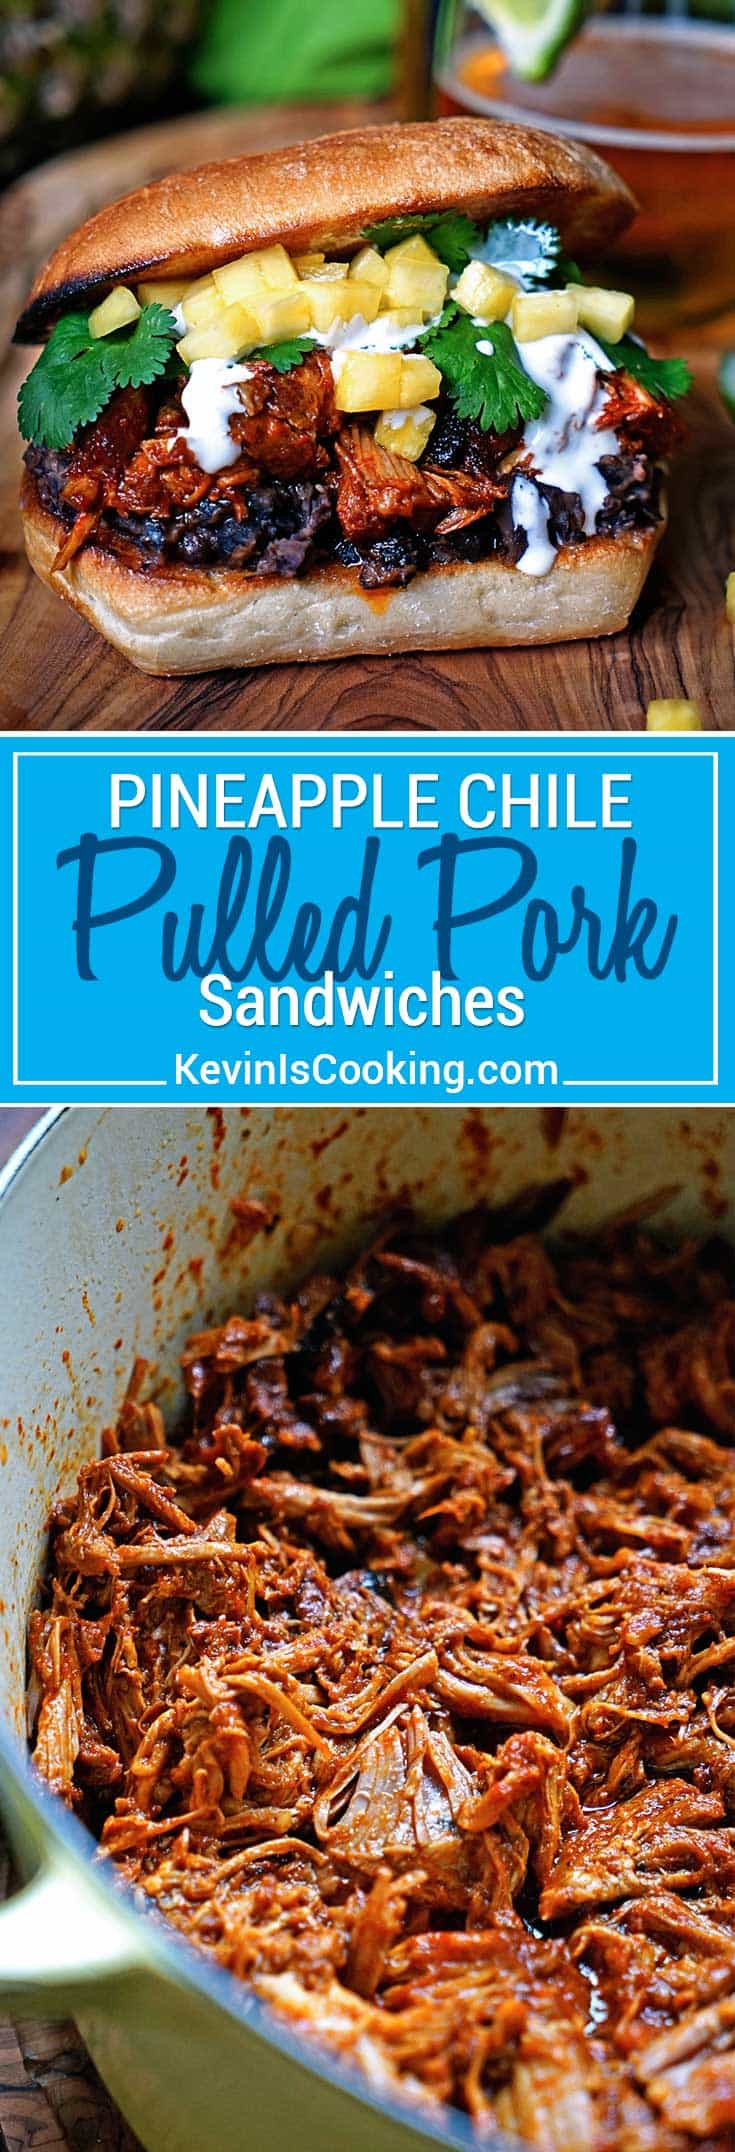 This slow simmered Pineapple Chile Pulled Pork is stuffed in a ciabatta roll, layered on top of mashed black beans, a drizzle of Mexican crema, cilantro and diced pineapple. One of those messy-but-worth-it sandwiches that packs the flavor punch!